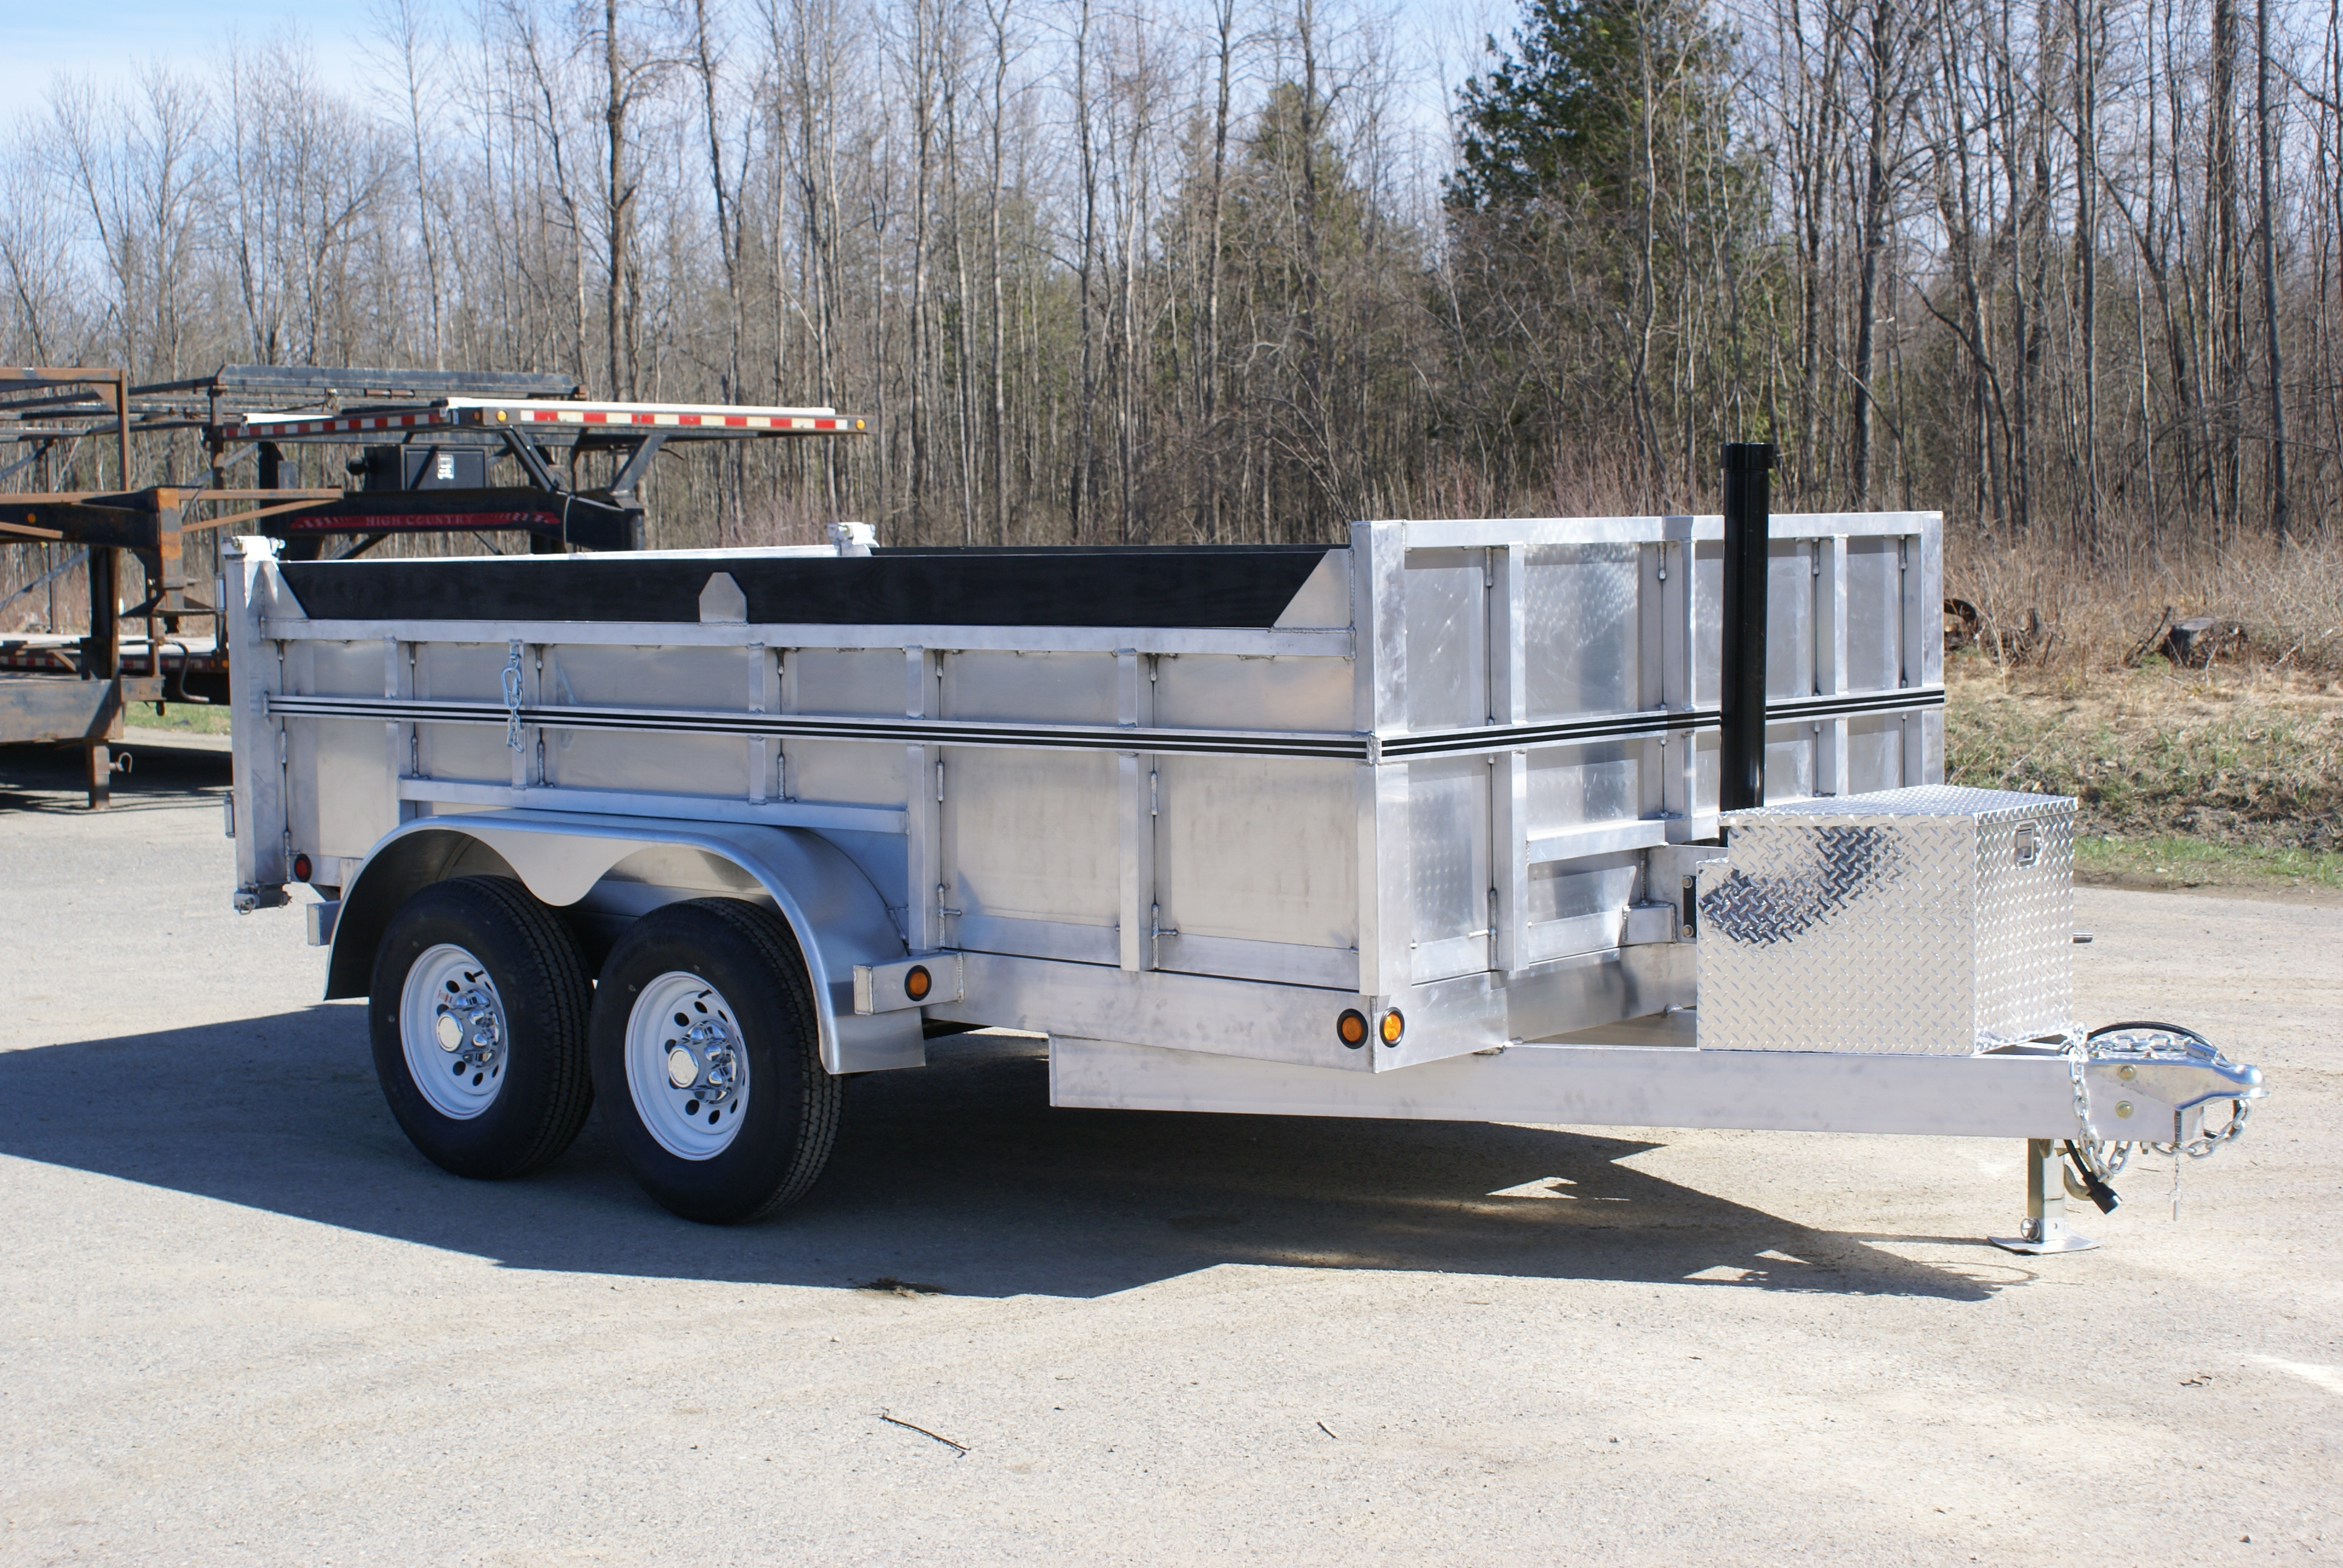 Mission Trailers Trailer Gallery J Amp M Auto Nassau Ny